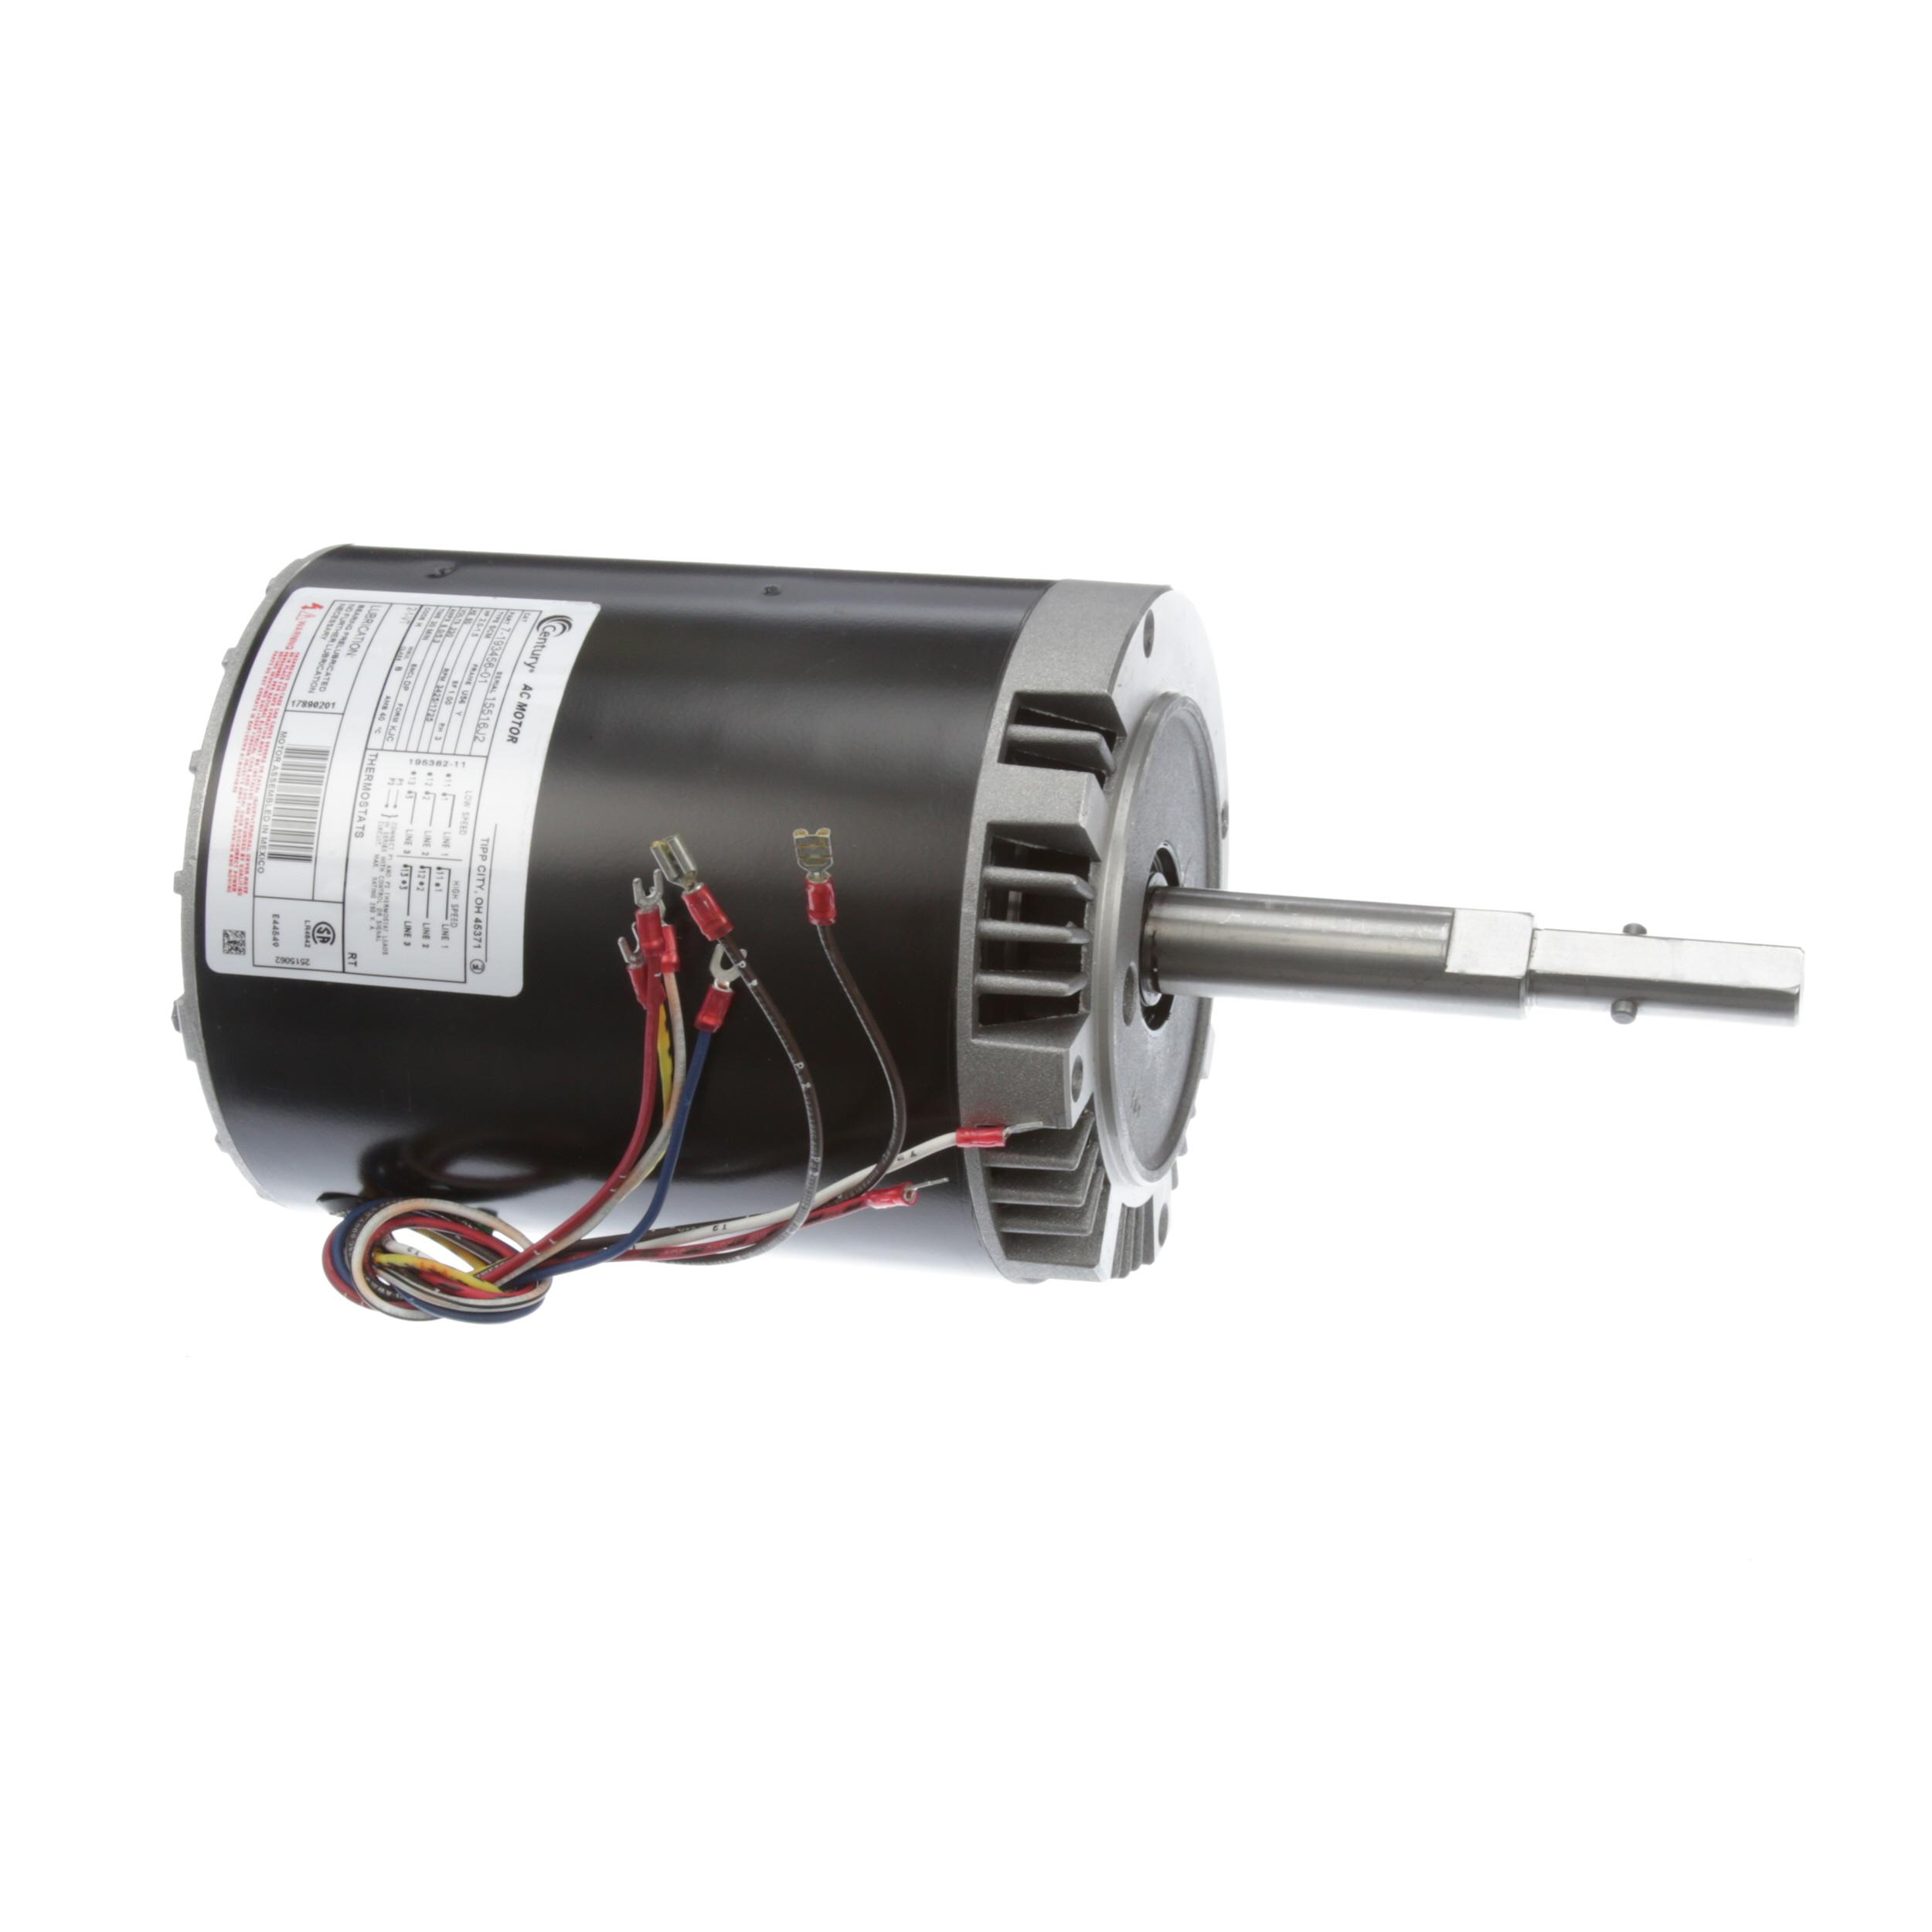 Robot coupe h motor bx4 bx6 low profile part s193456 for Robot motors and parts